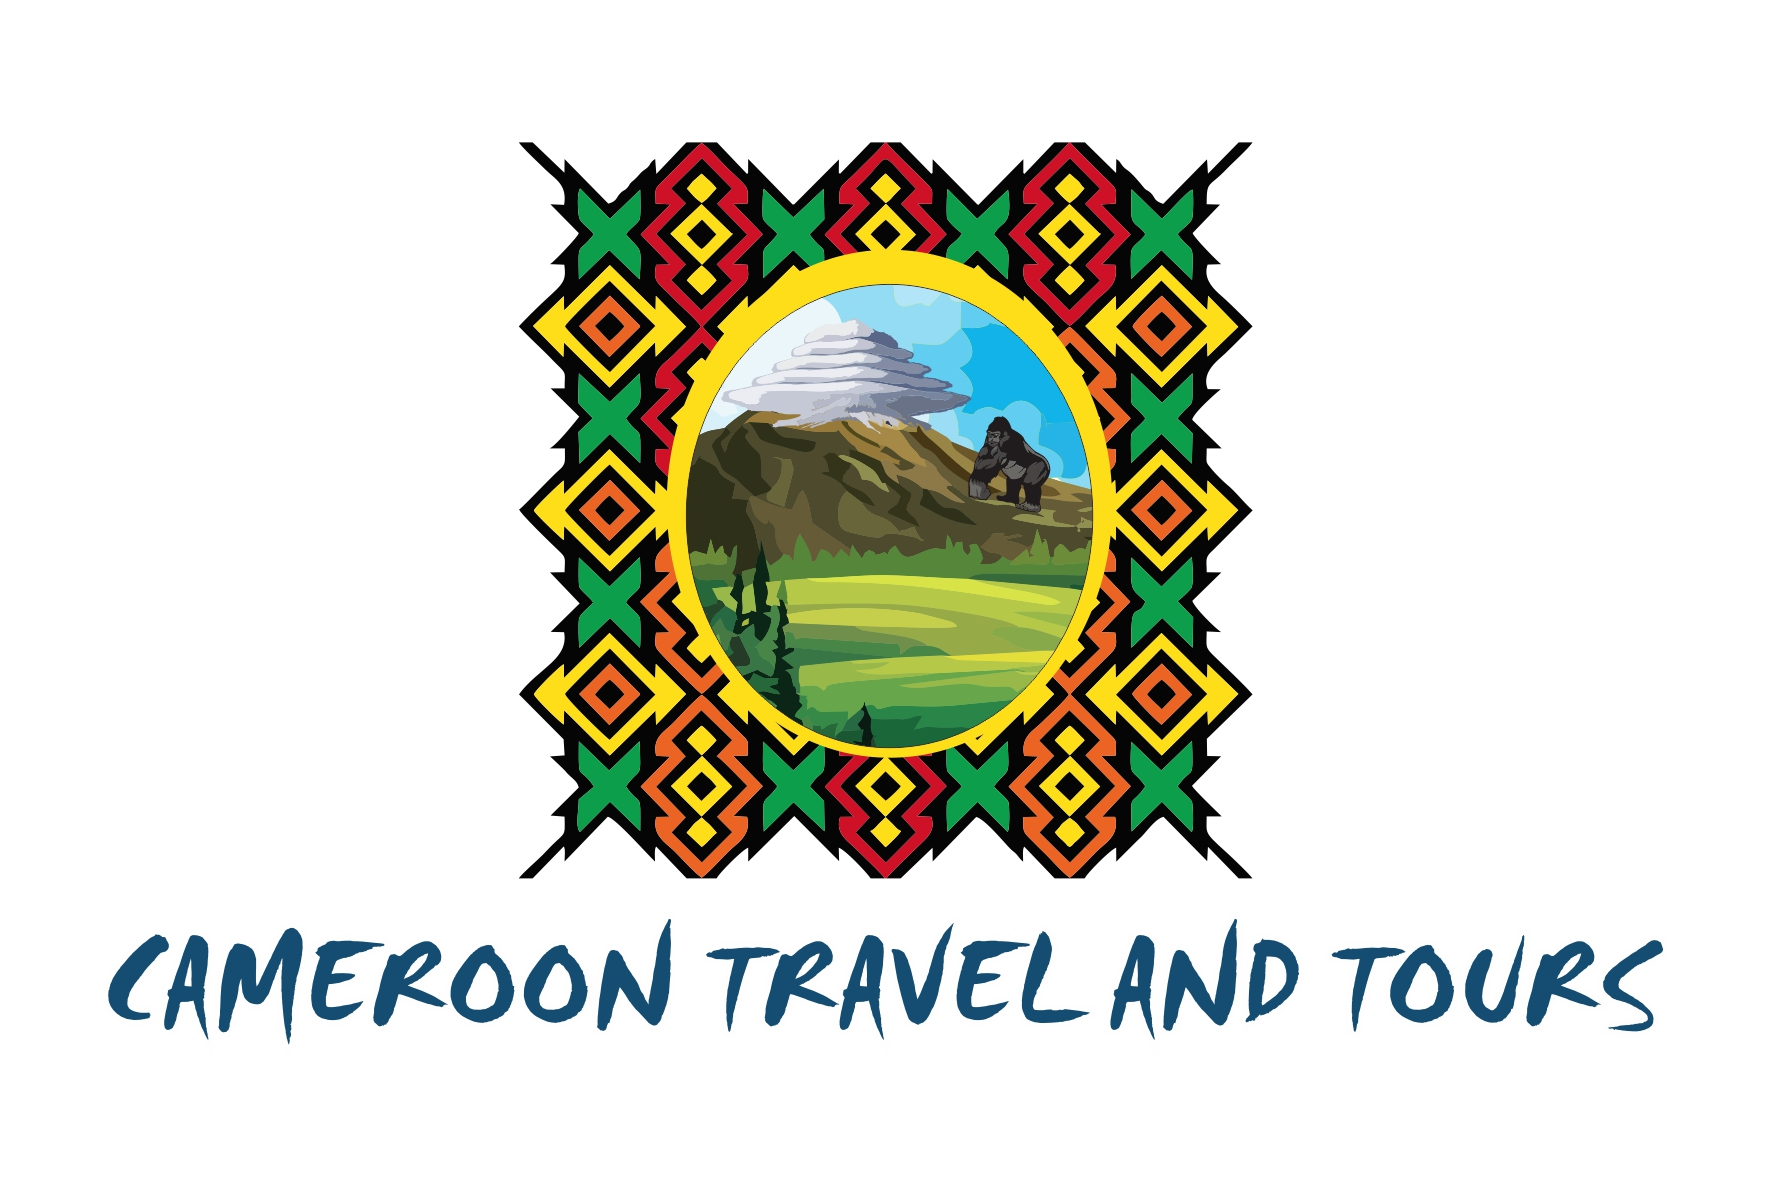 Cameroon travel and tours logo